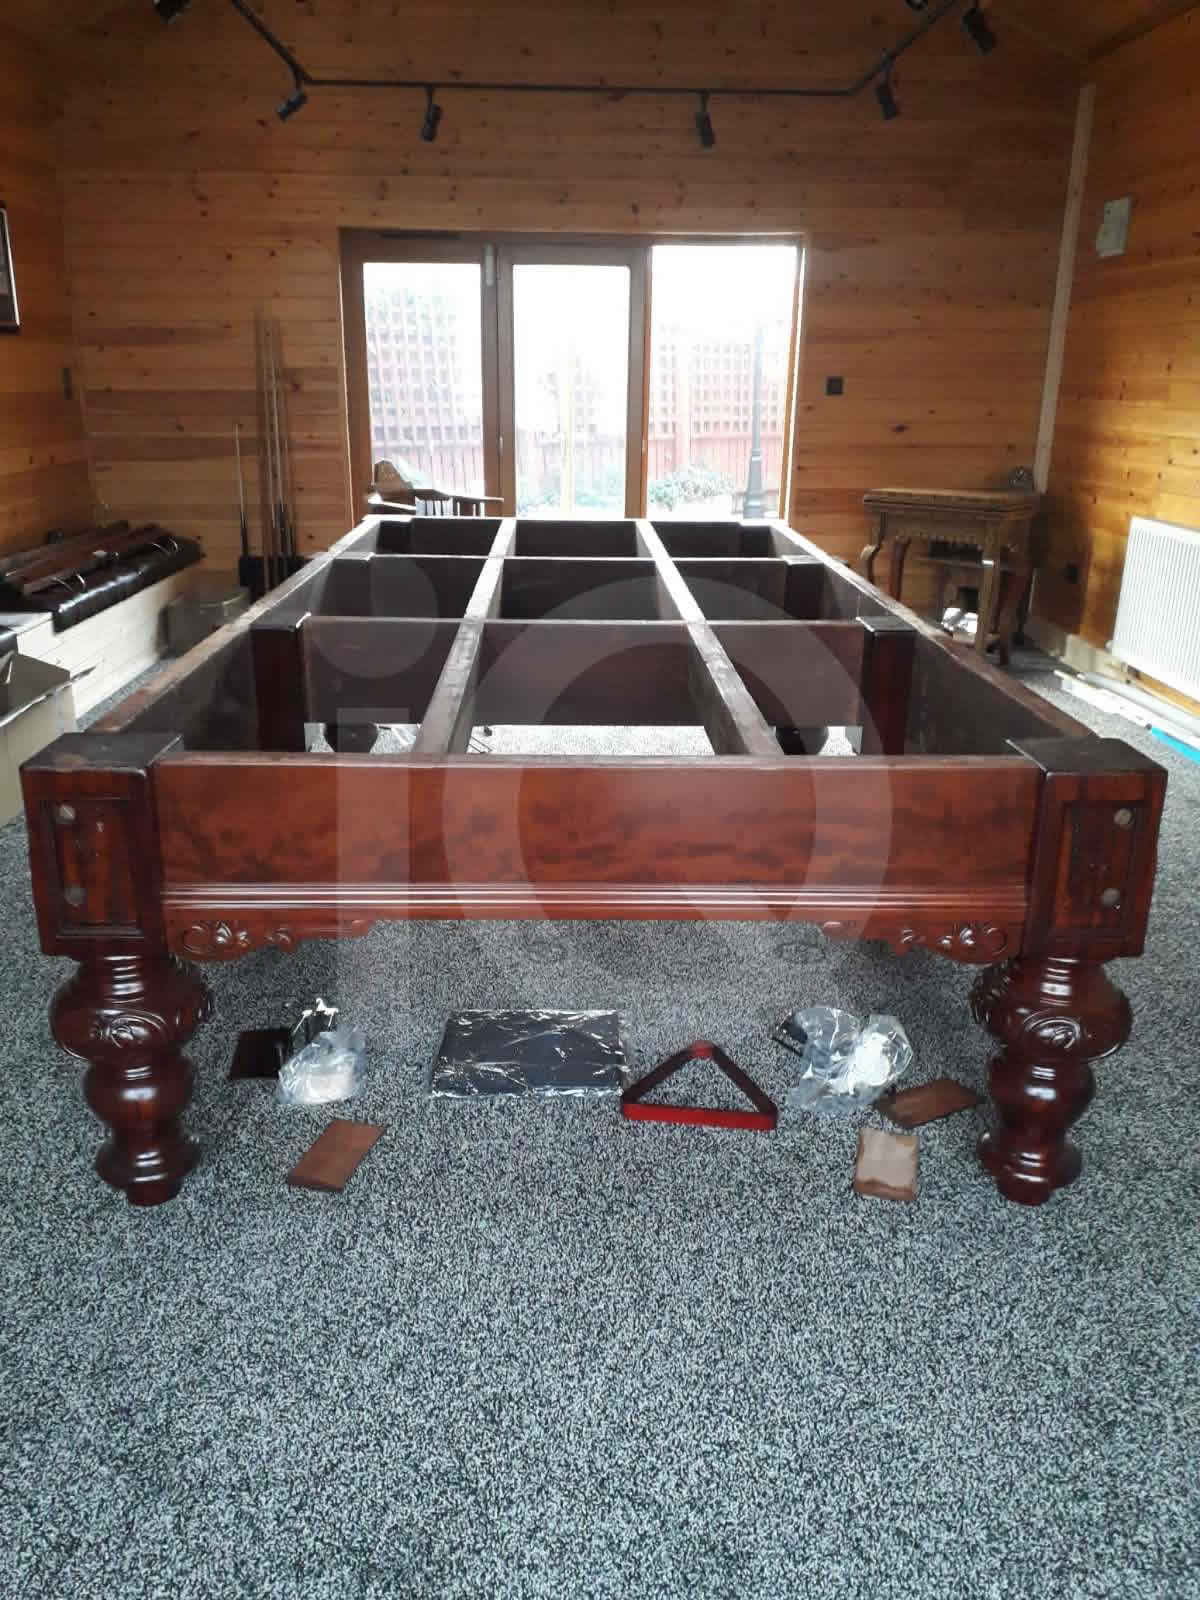 Snooker table recovered on site by IQ